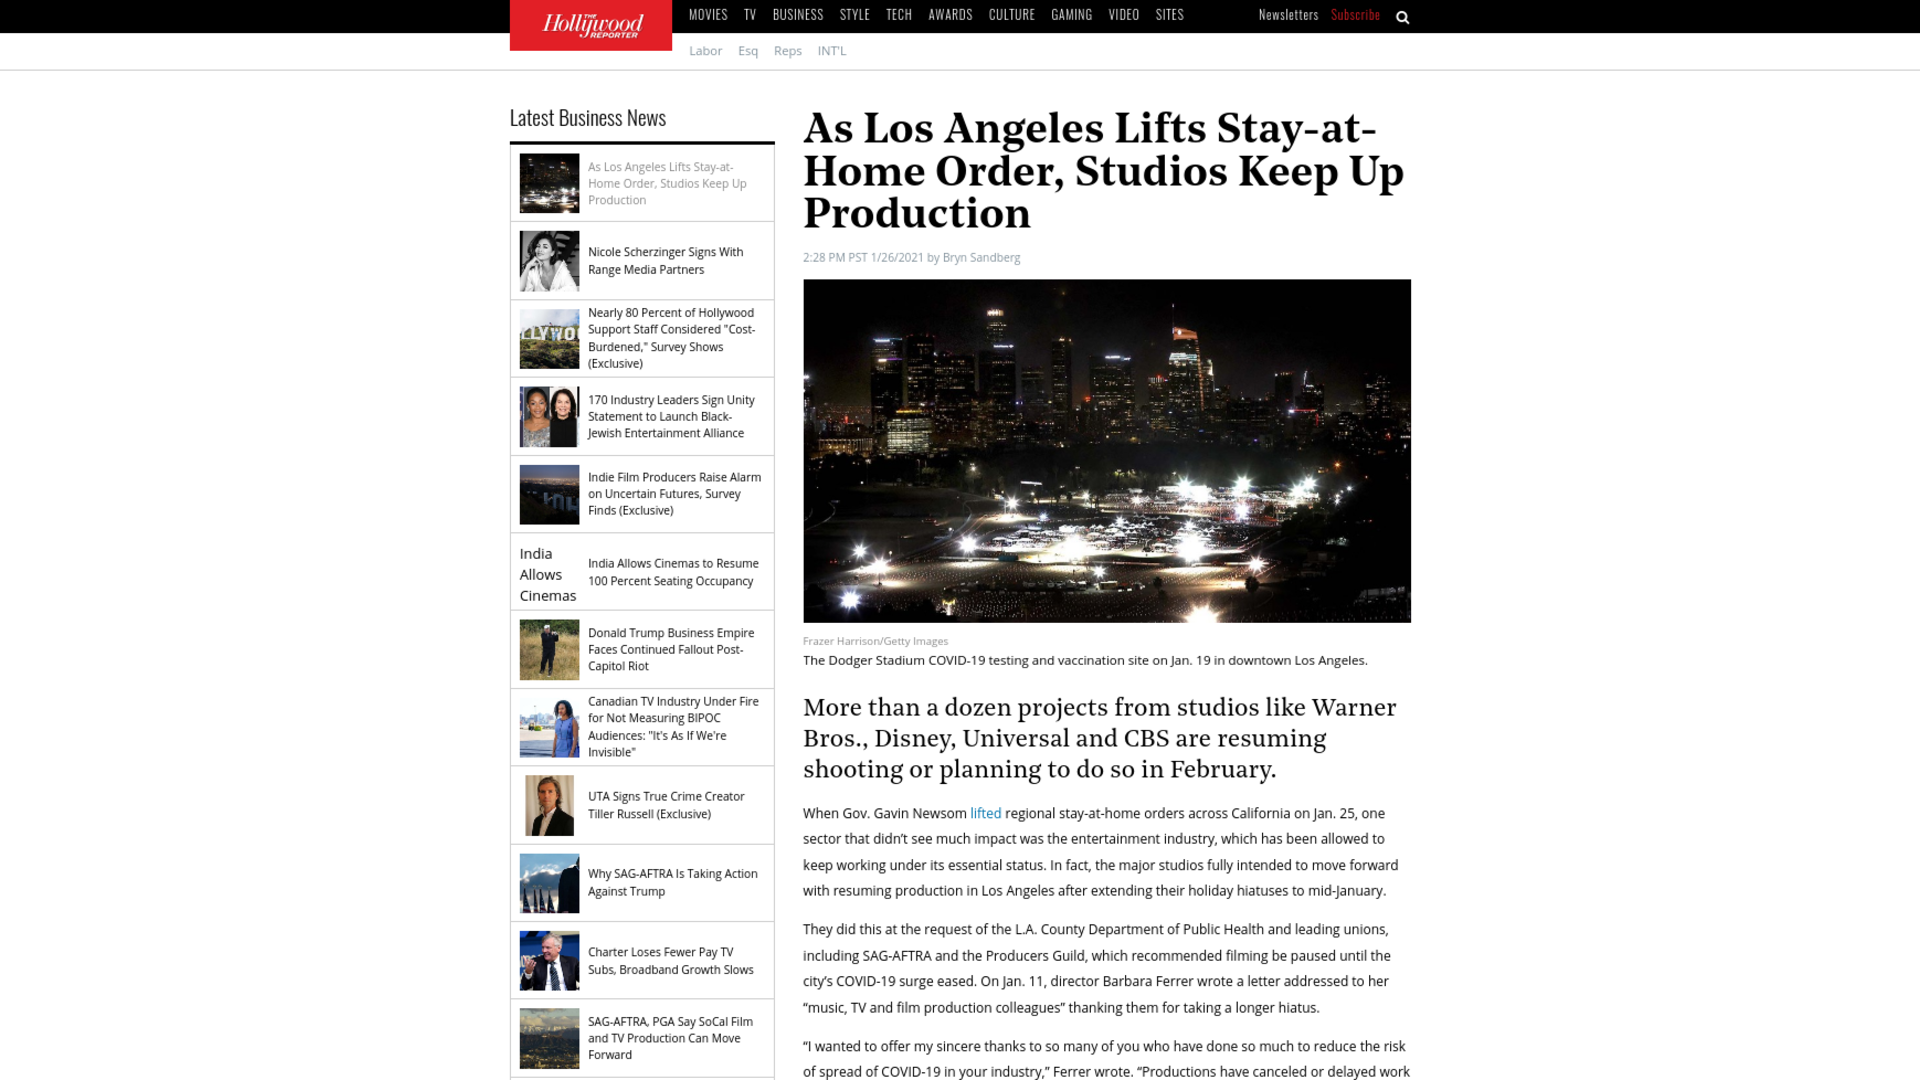 Fairness Rocks News As Los Angeles Lifts Stay-at-Home Order, Studios Keep Up Production